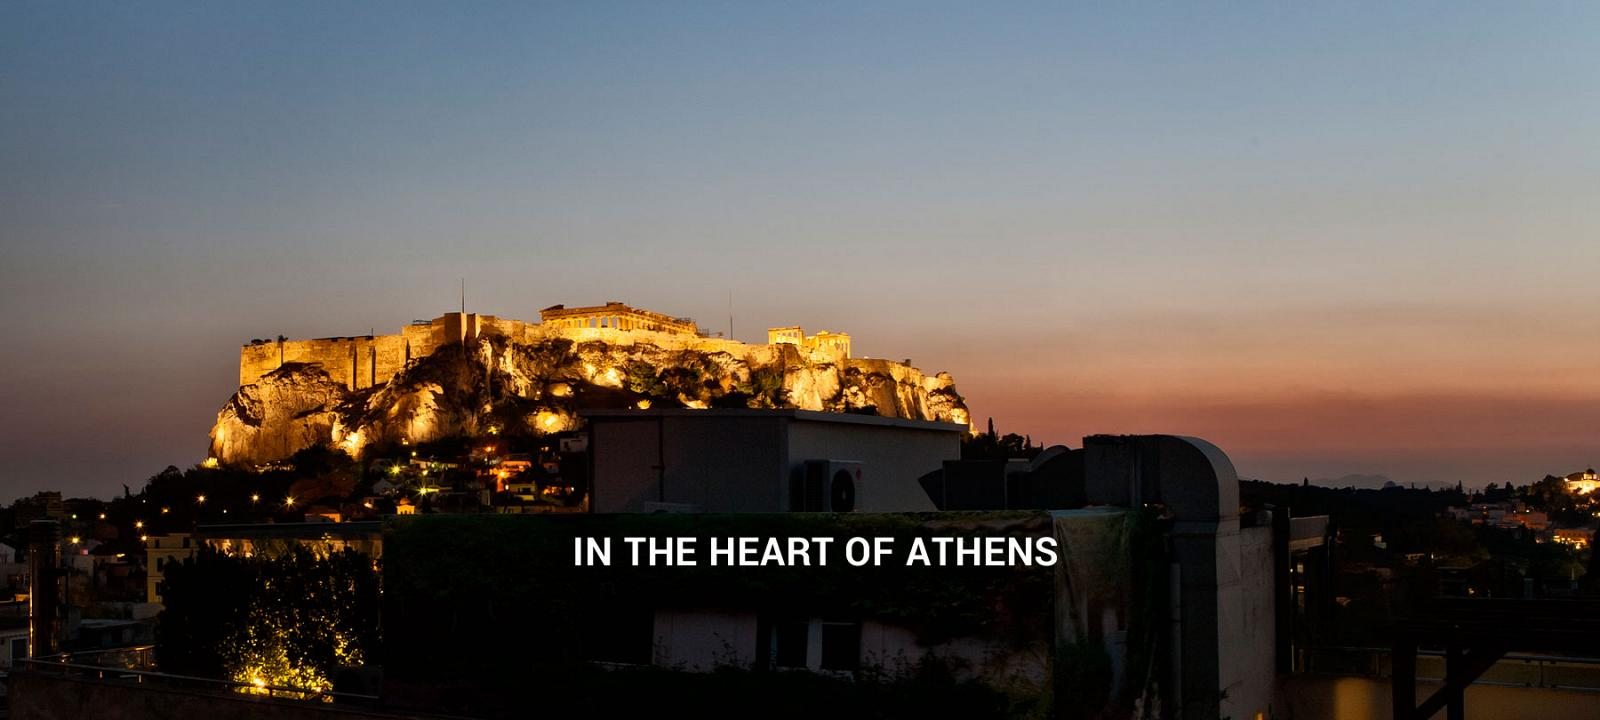 Hotel Hermes In Athens Plaka Acropolis Central Athens